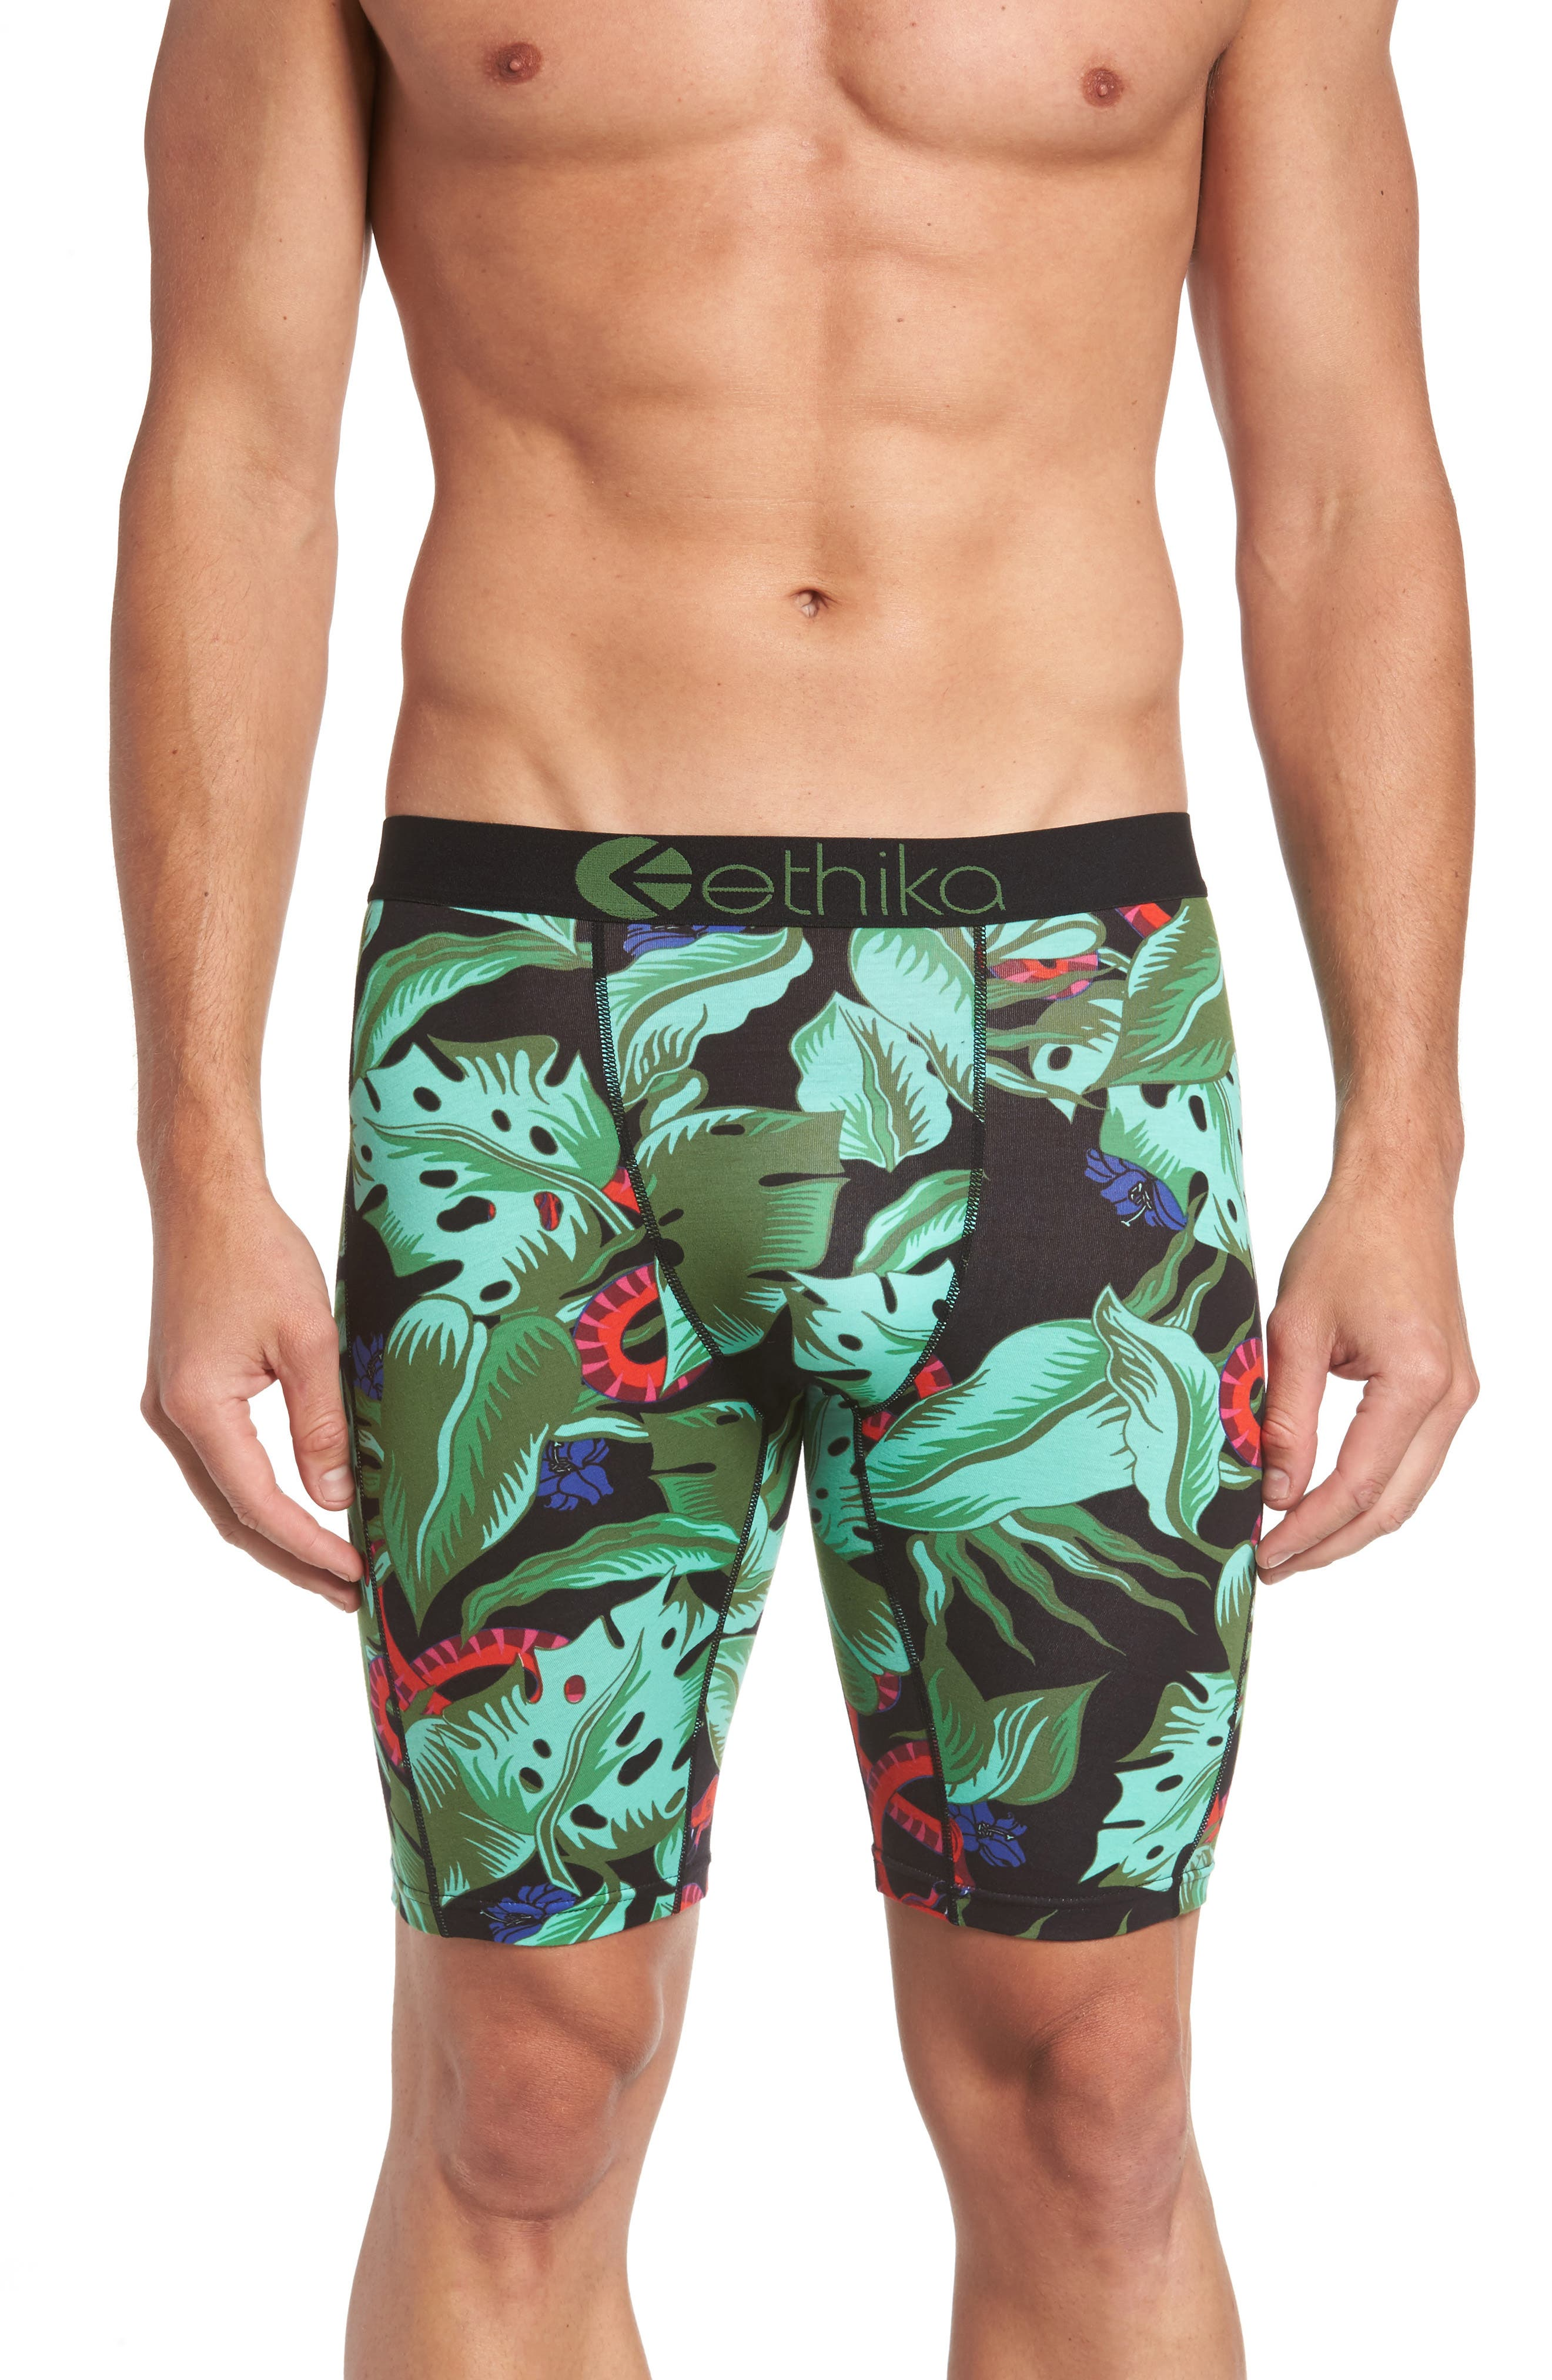 Ethika Jungle Snake Stretch Cotton Boxer Briefs